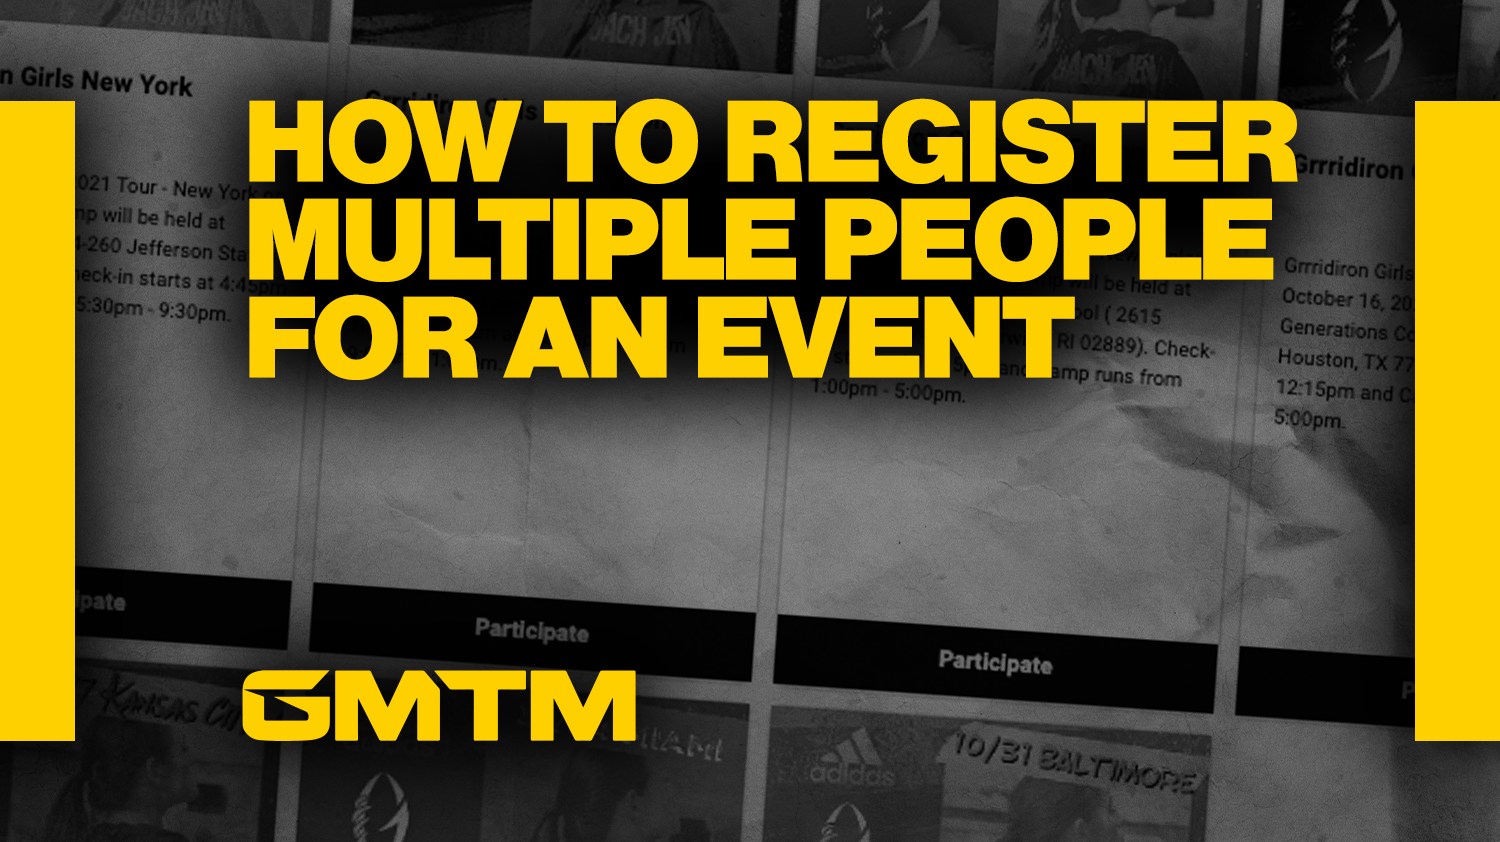 How To Register Multiple People For A GMTM Event